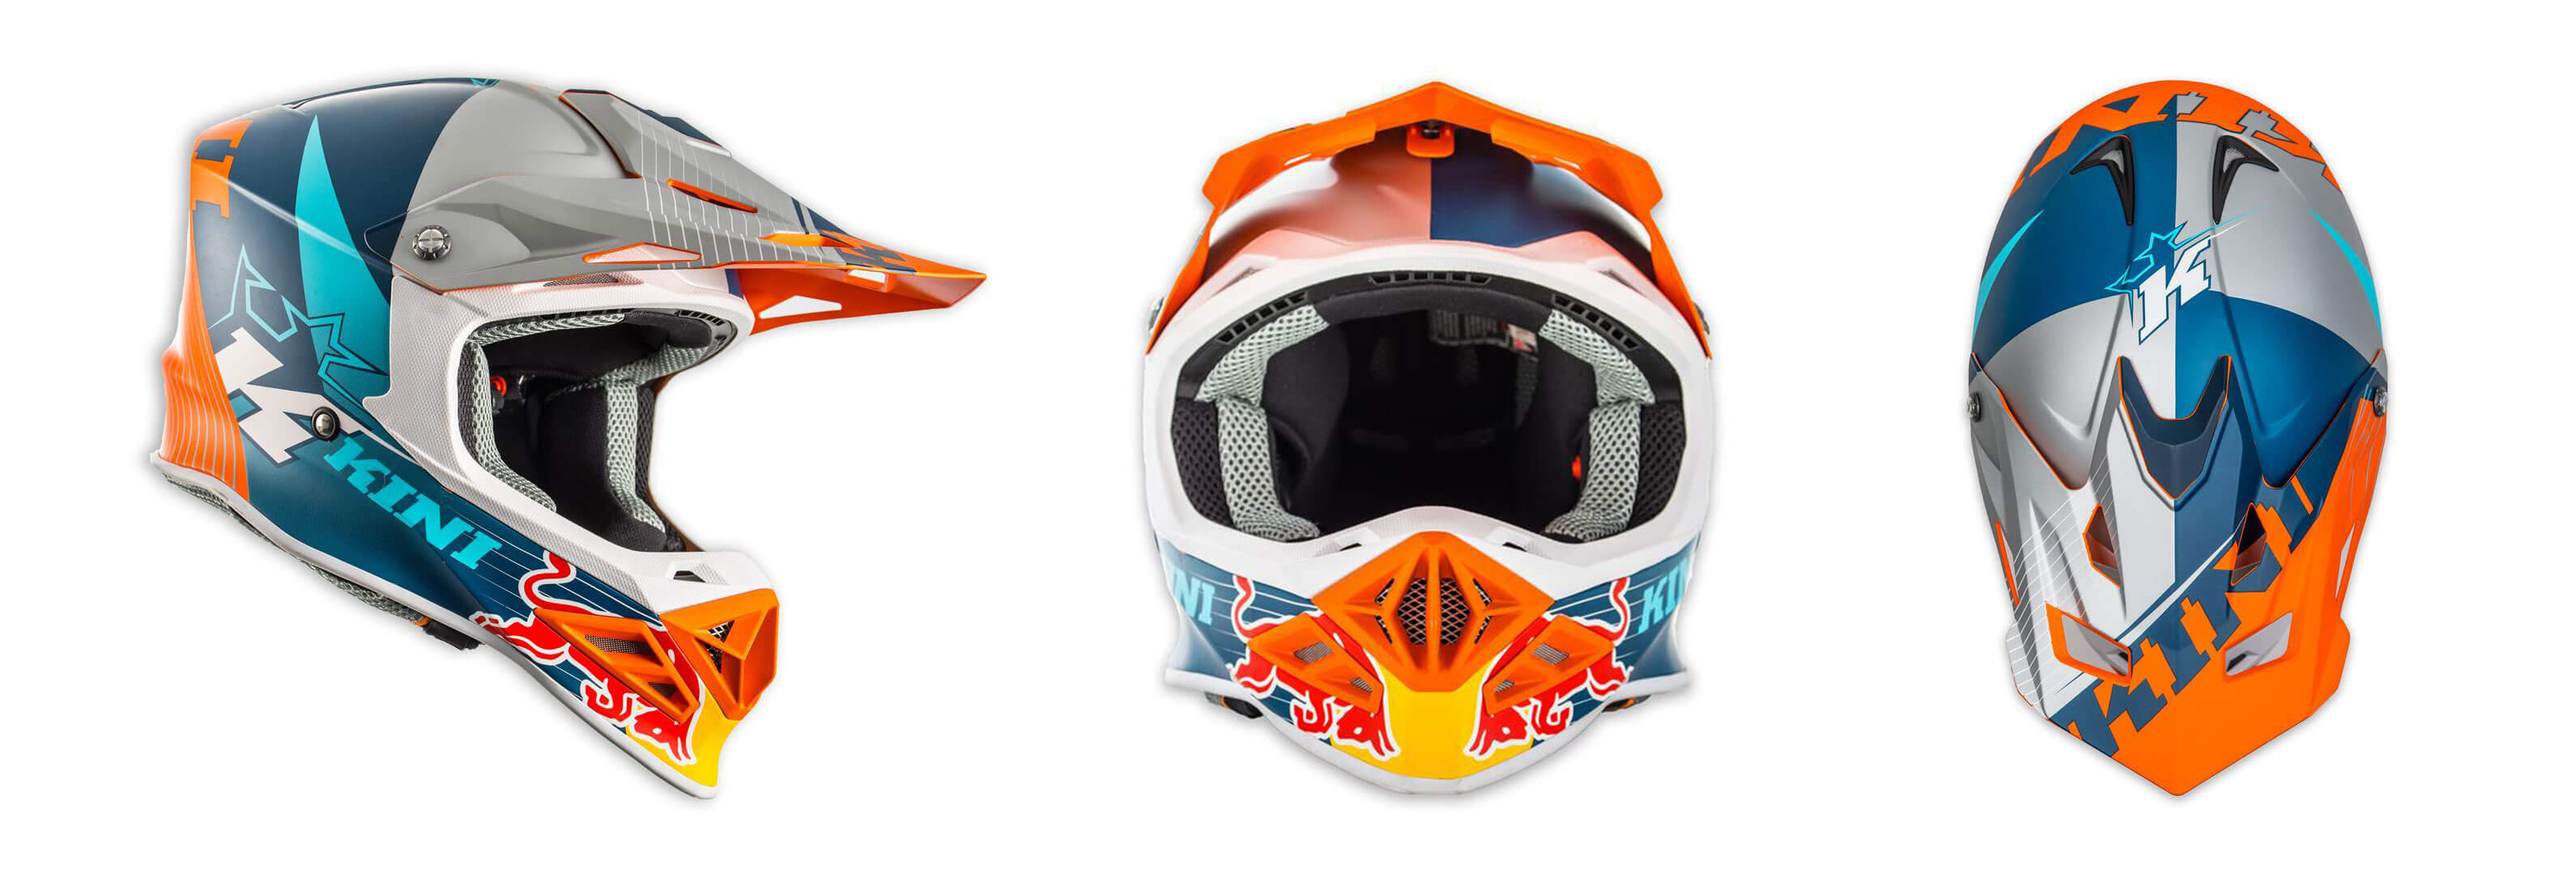 Supermoto Helm - Kini Red Bull Competition Helm